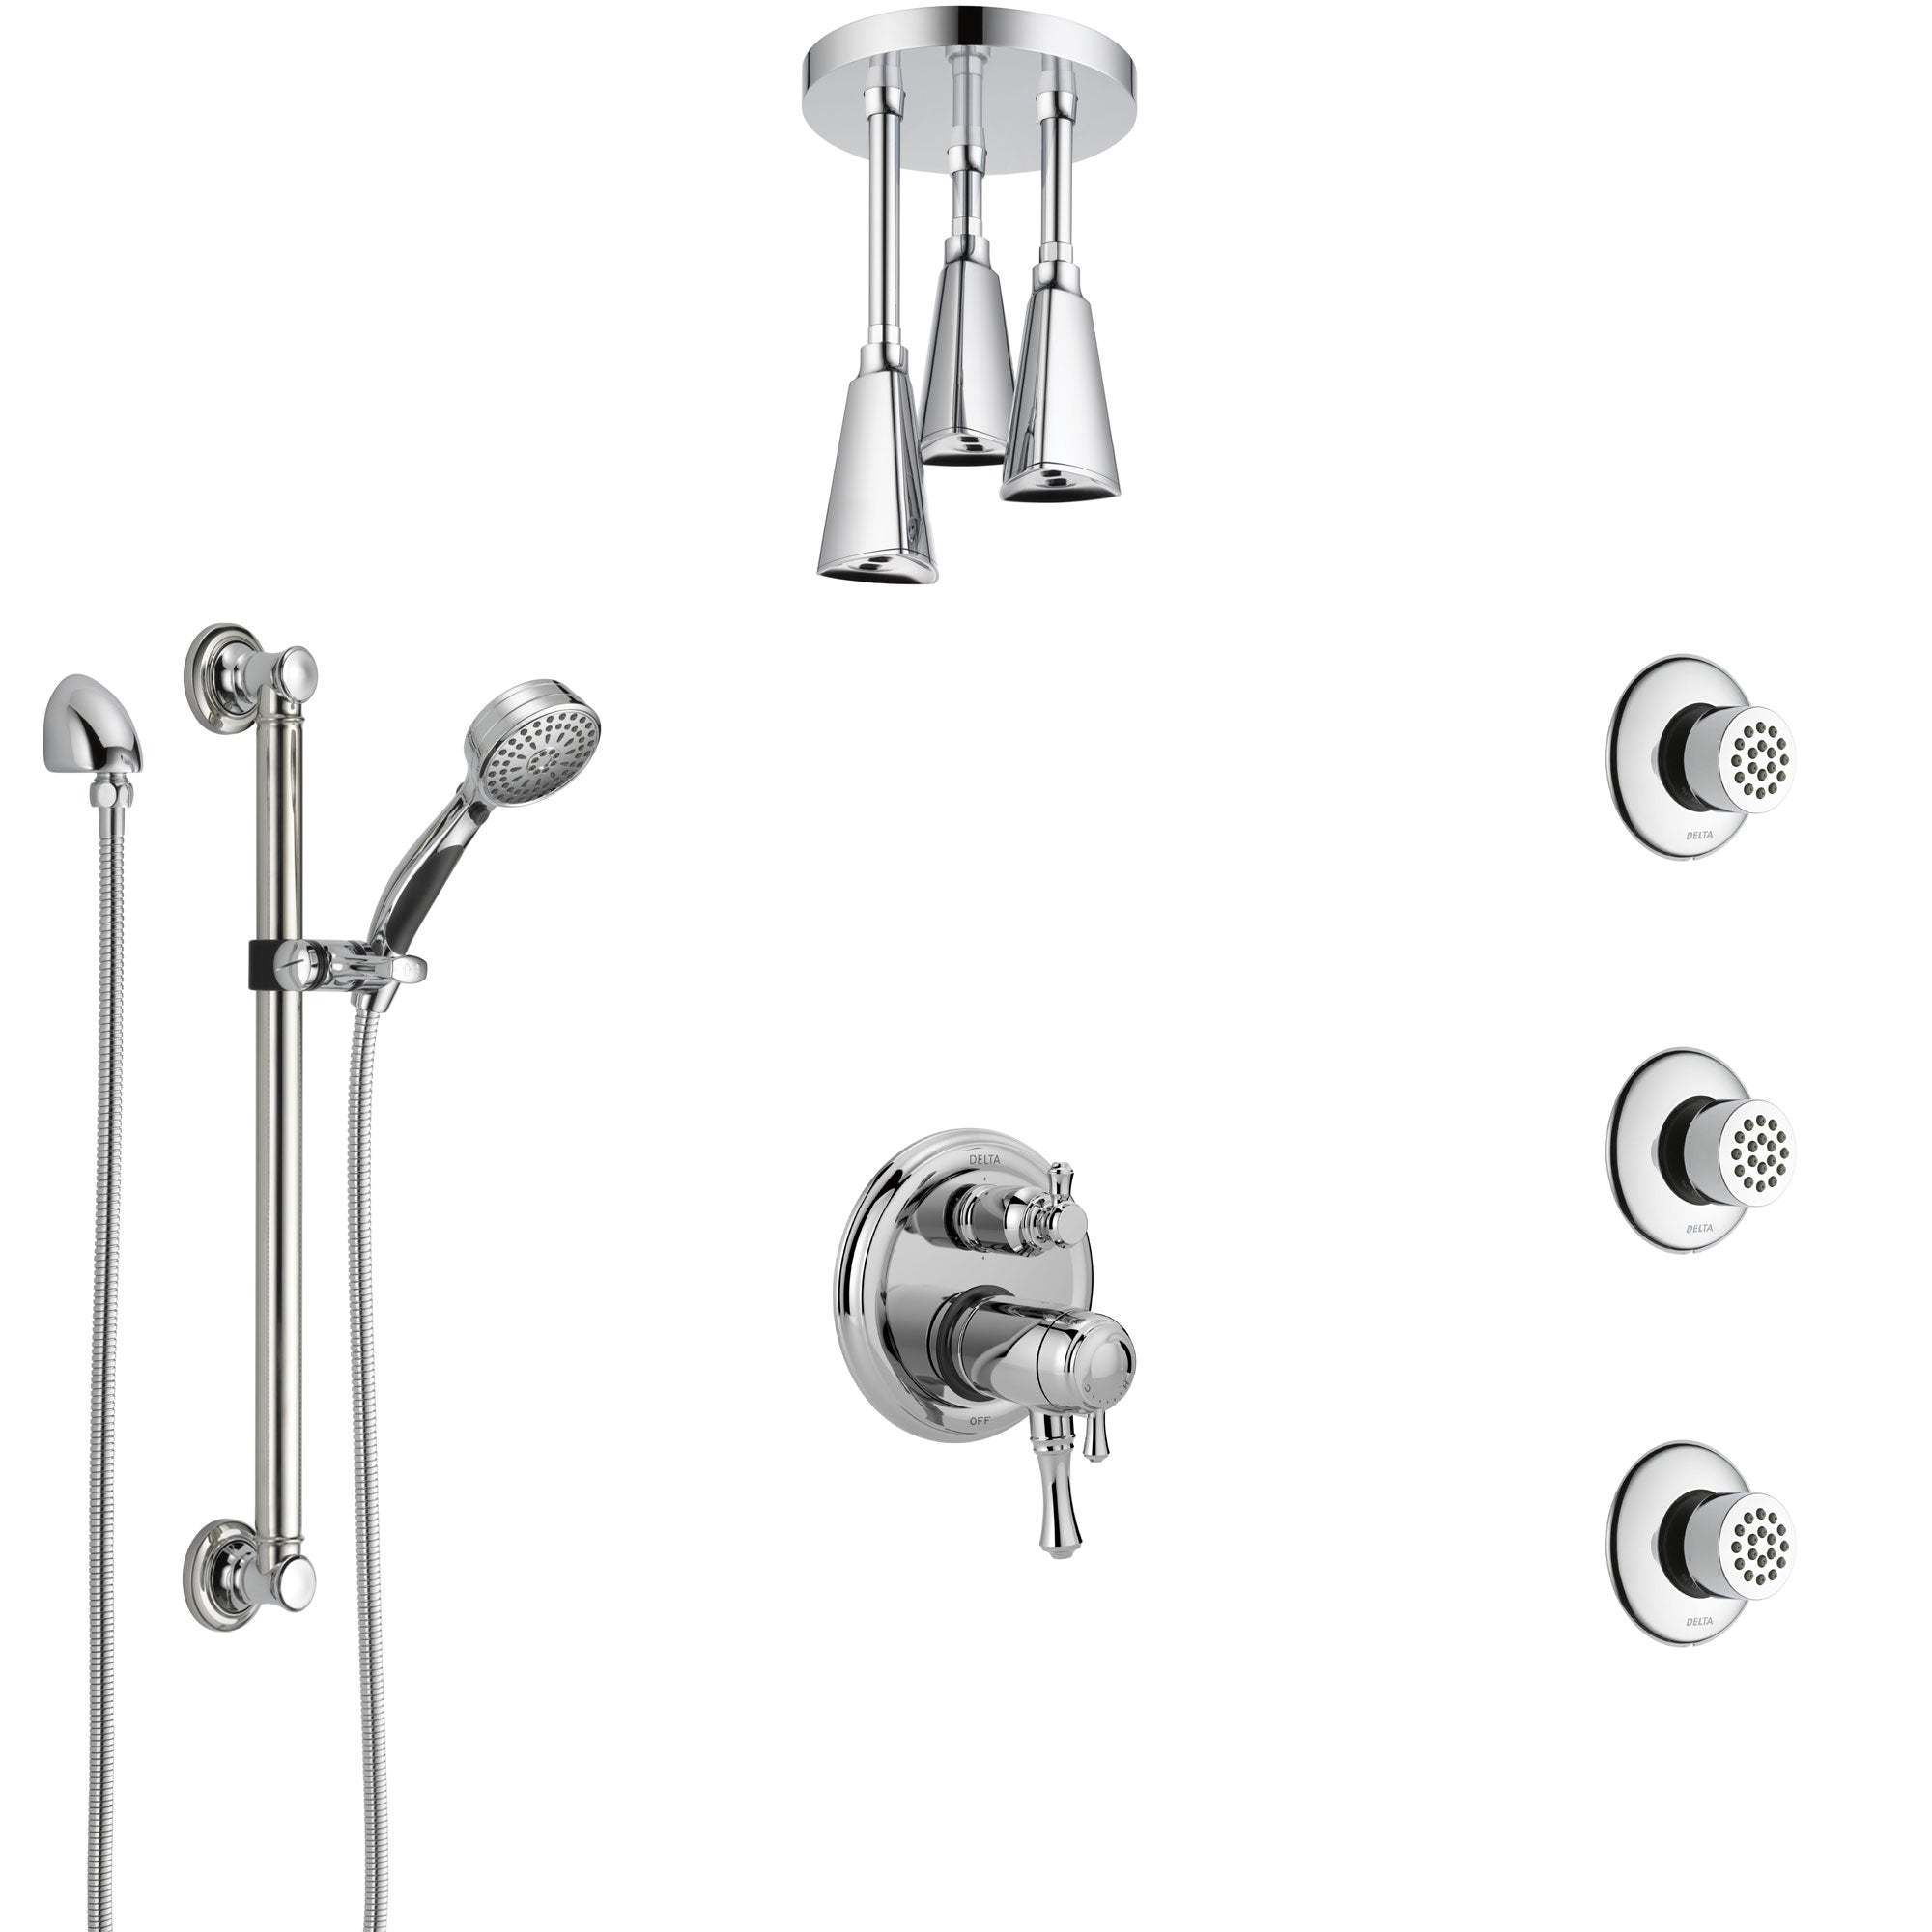 Delta Cassidy Chrome Dual Thermostatic Control Integrated Diverter Shower System, Ceiling Showerhead, 3 Body Sprays, and Grab Bar Hand Spray SS27T9977